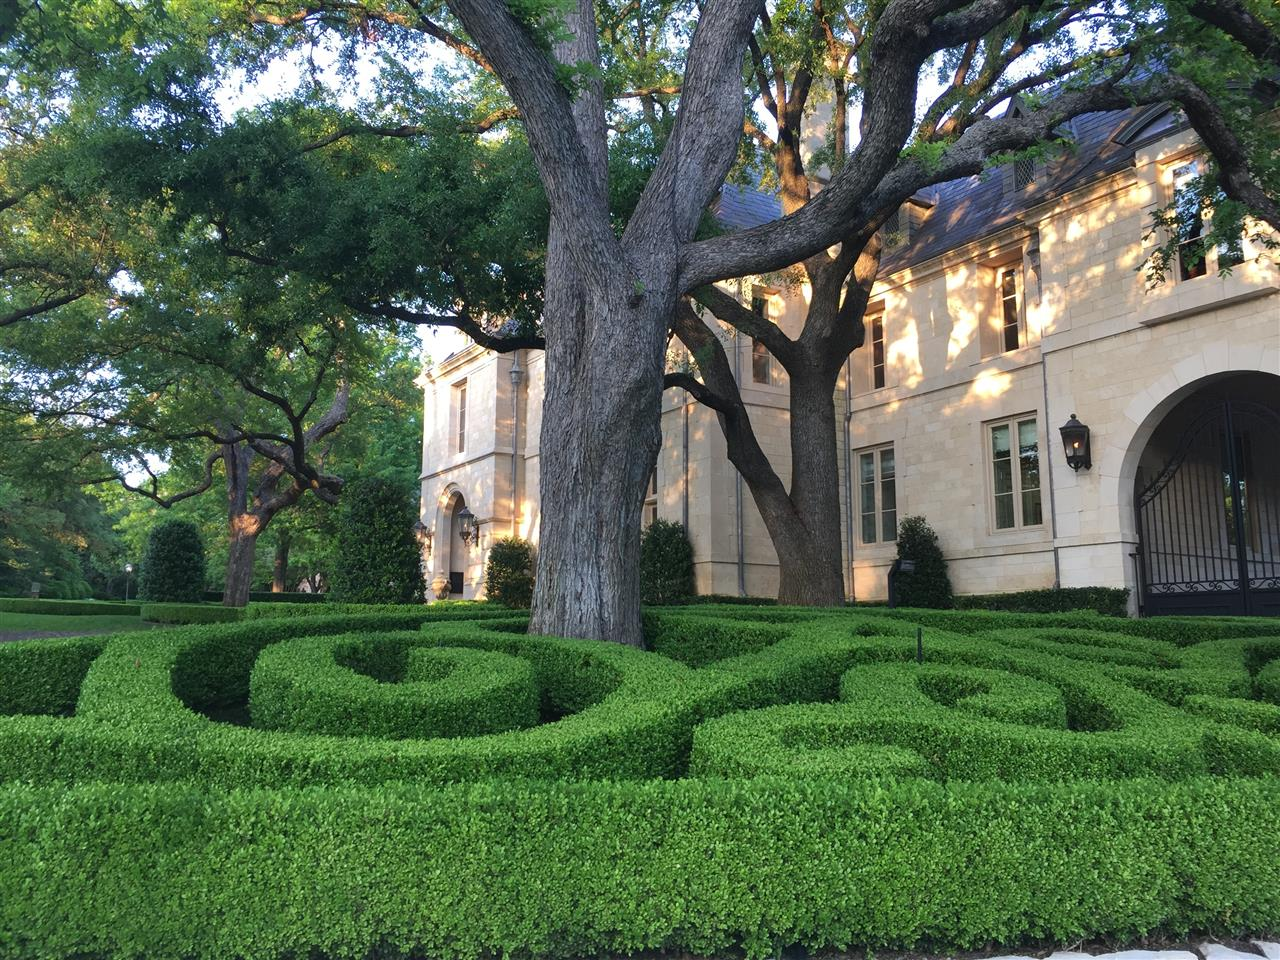 #Highland Park, elegant home and sculptured landscaping, #Dallas, #Texas